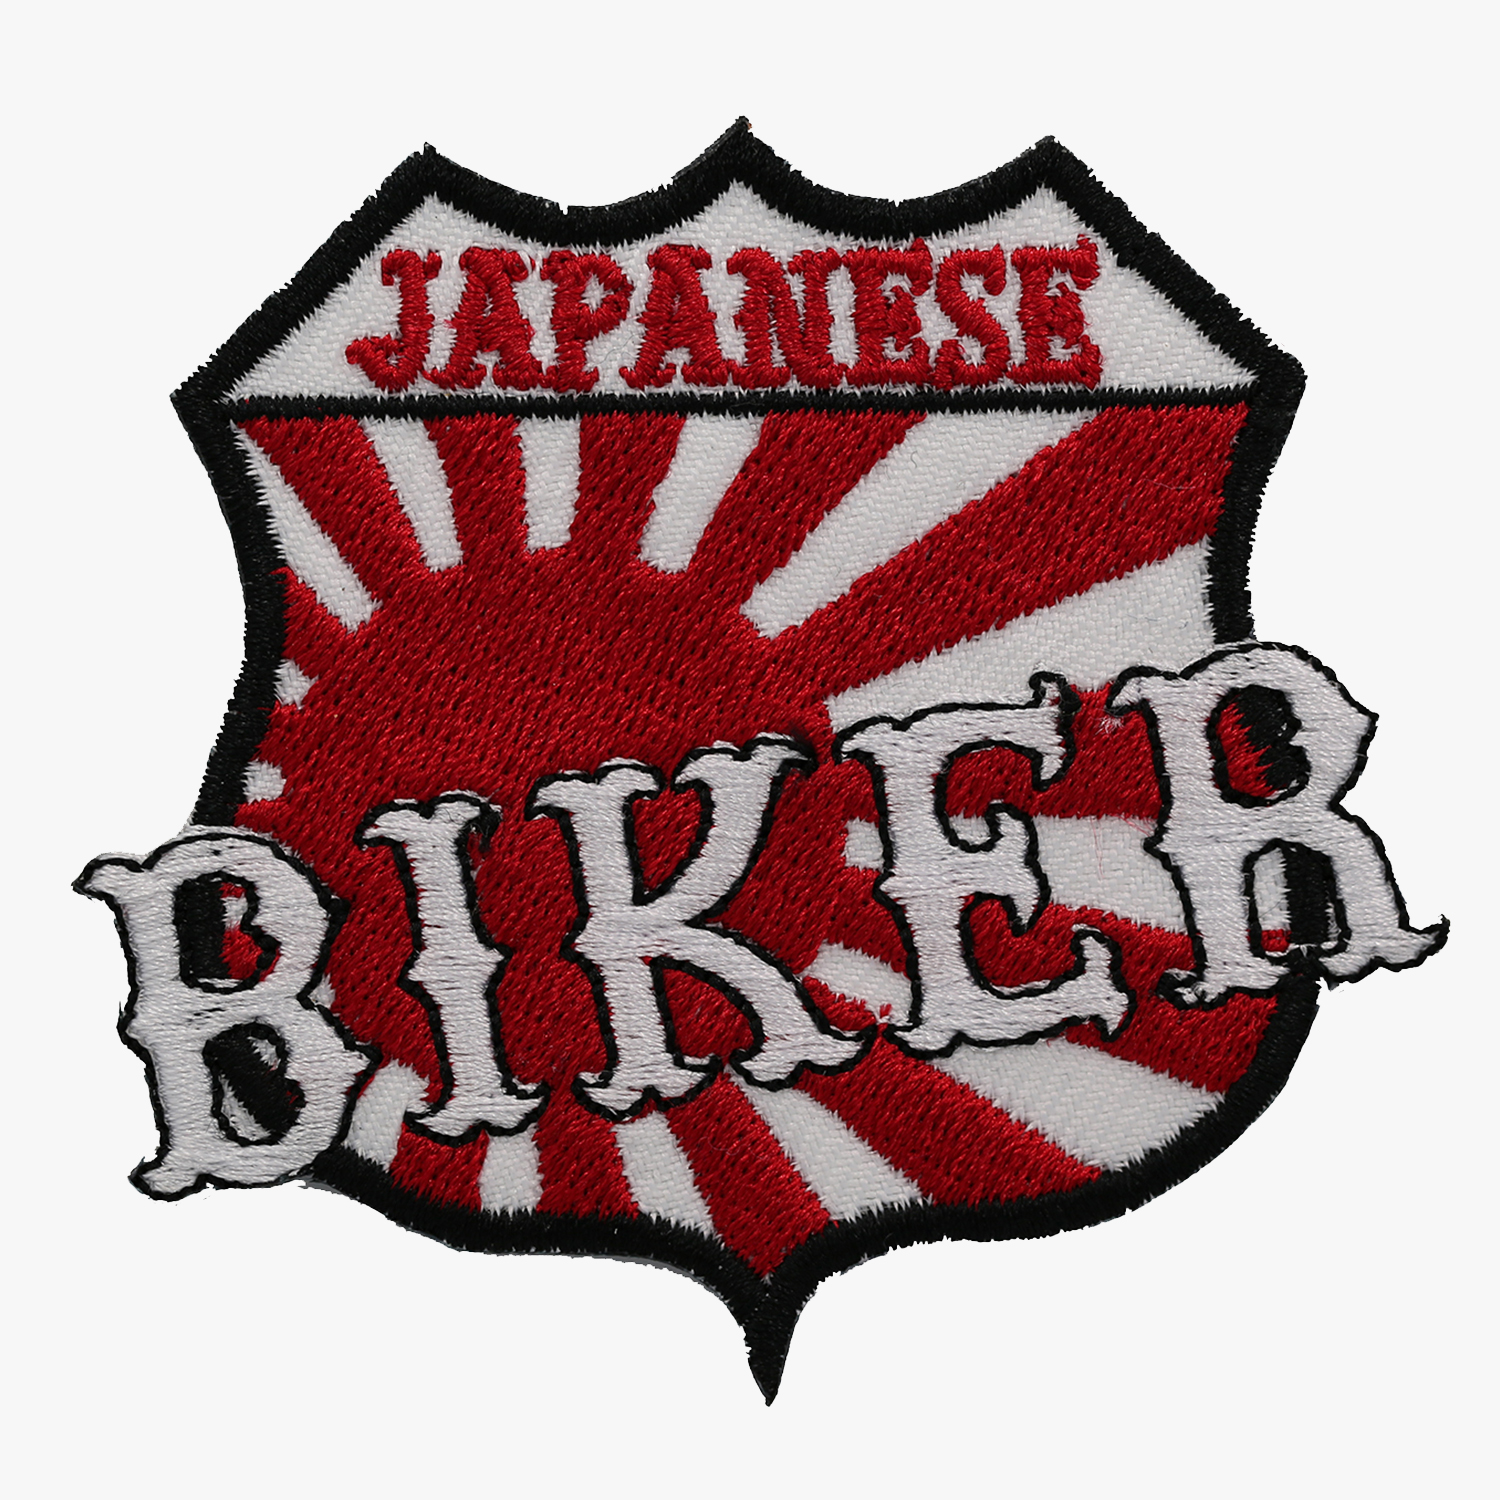 JAPANESE BIKER FLAG EMBROIDERY PATCH